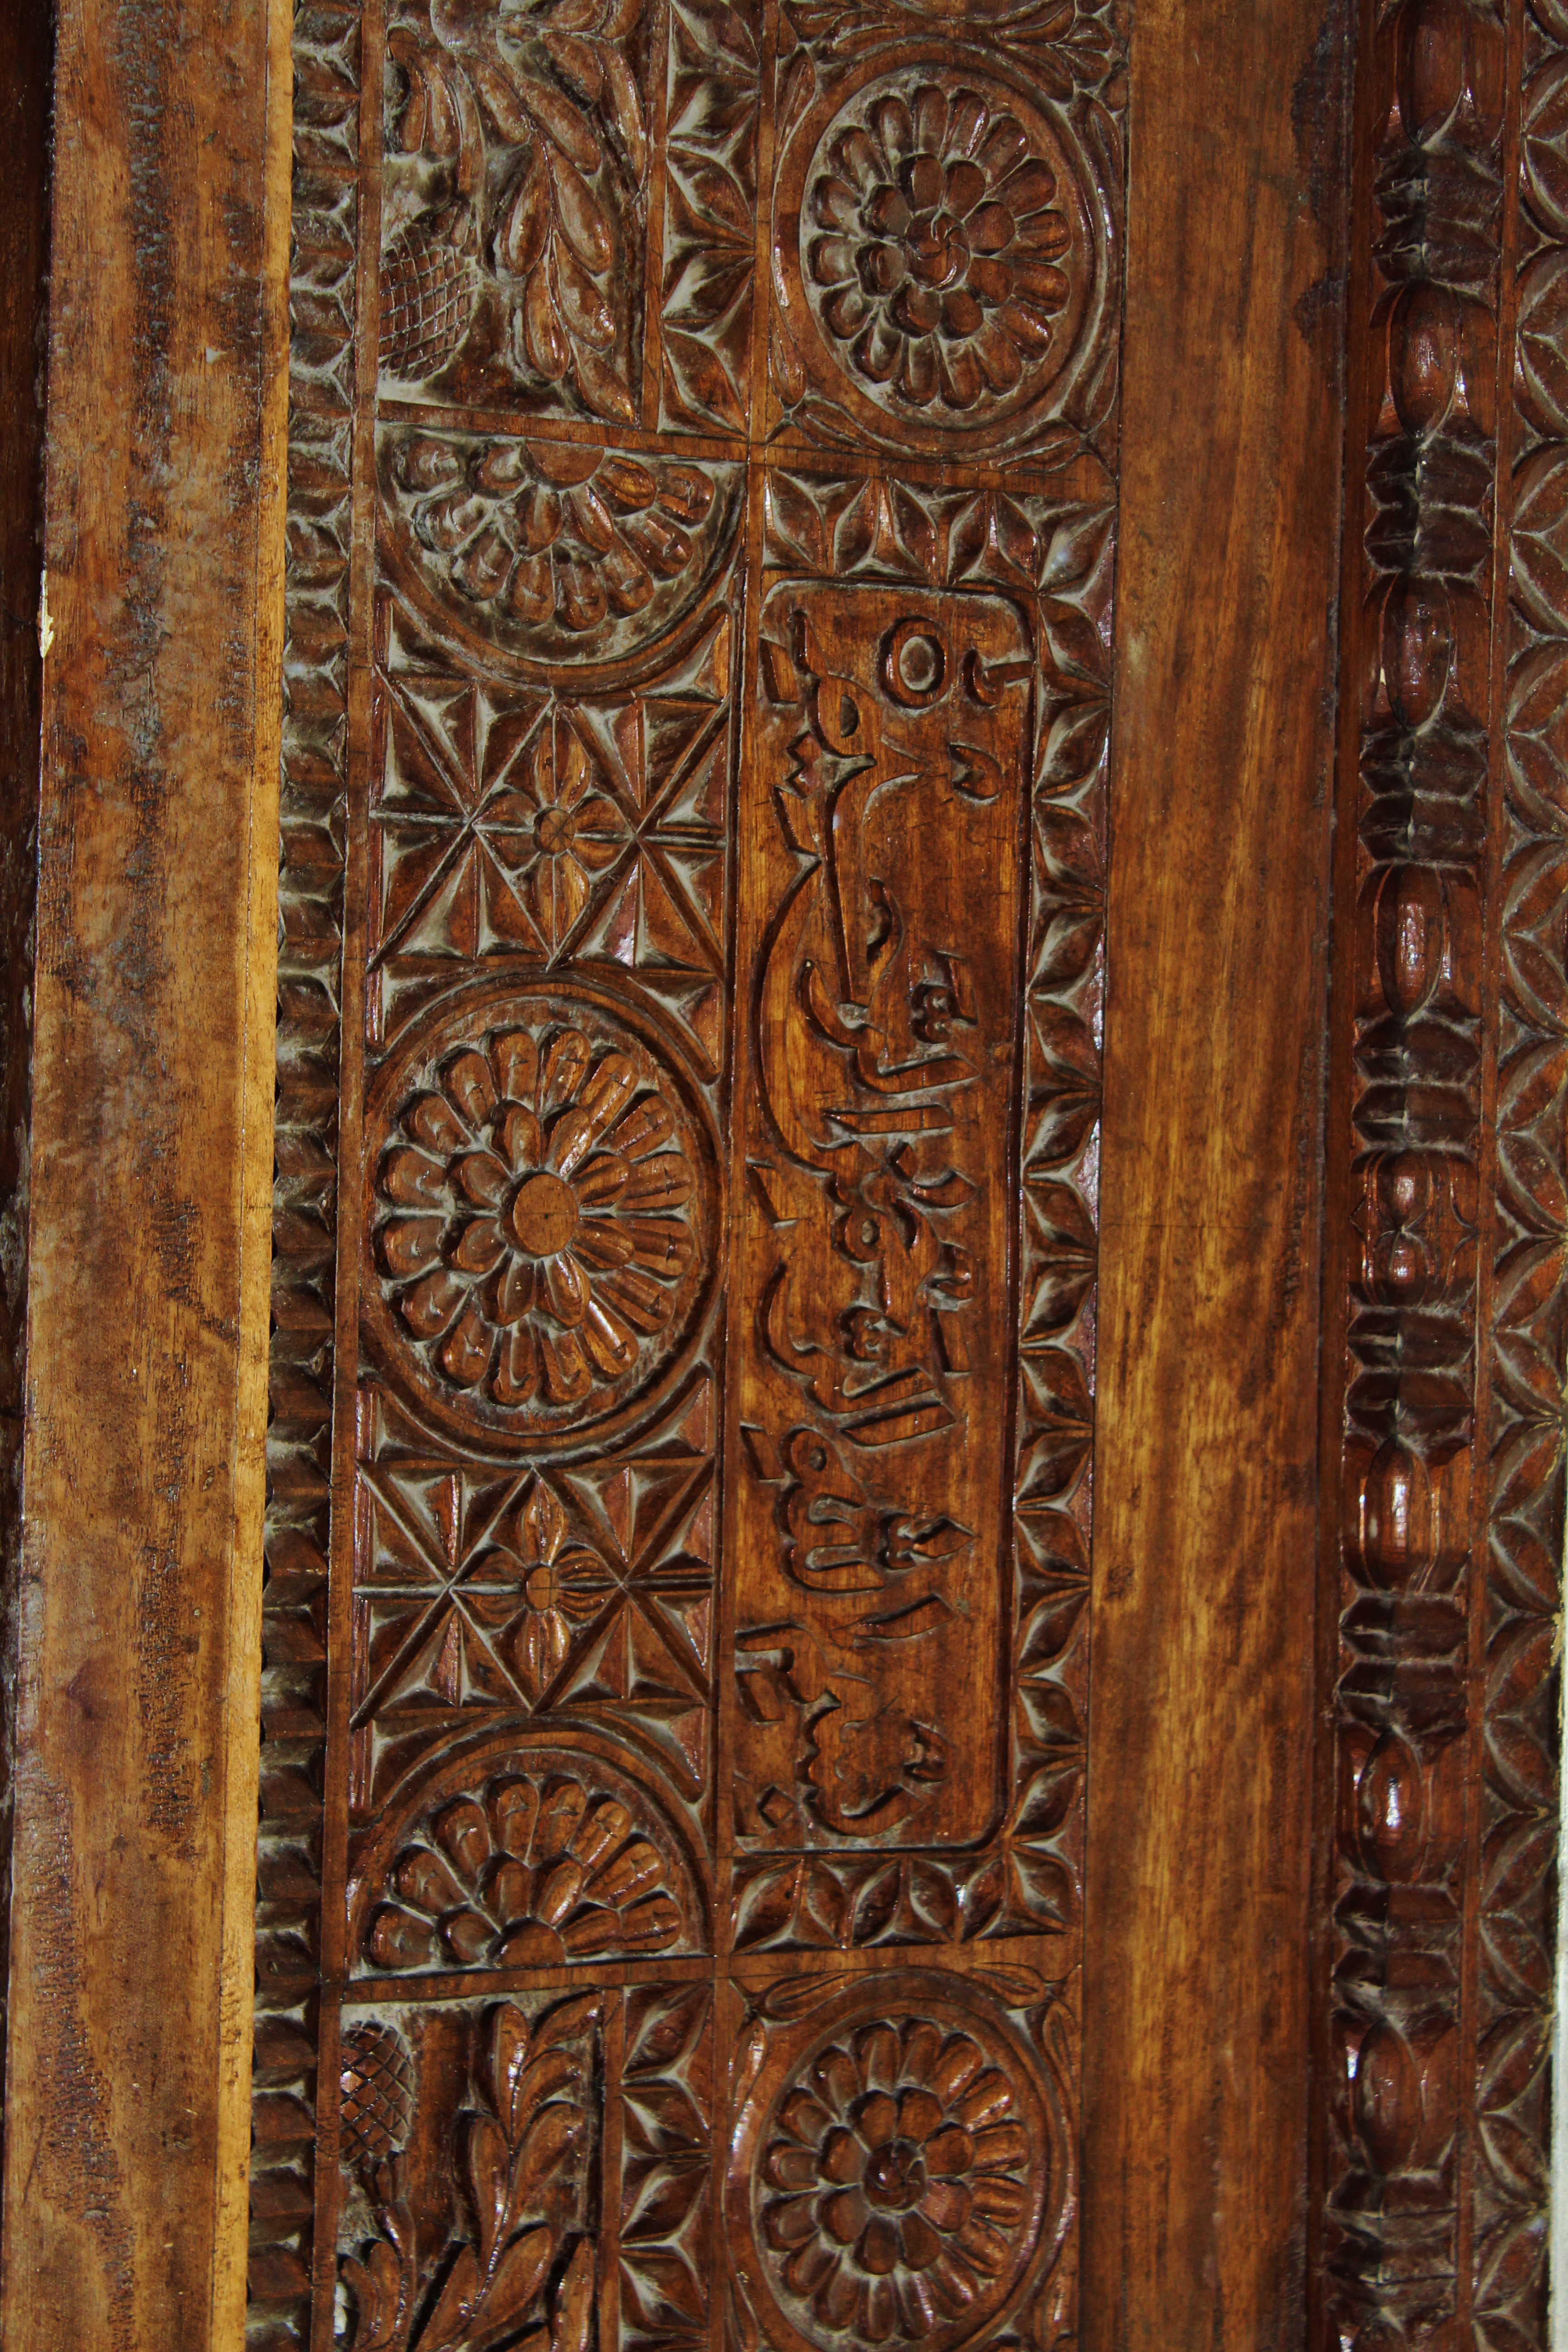 The doors in Stone Town are ornate and incredibly intricate